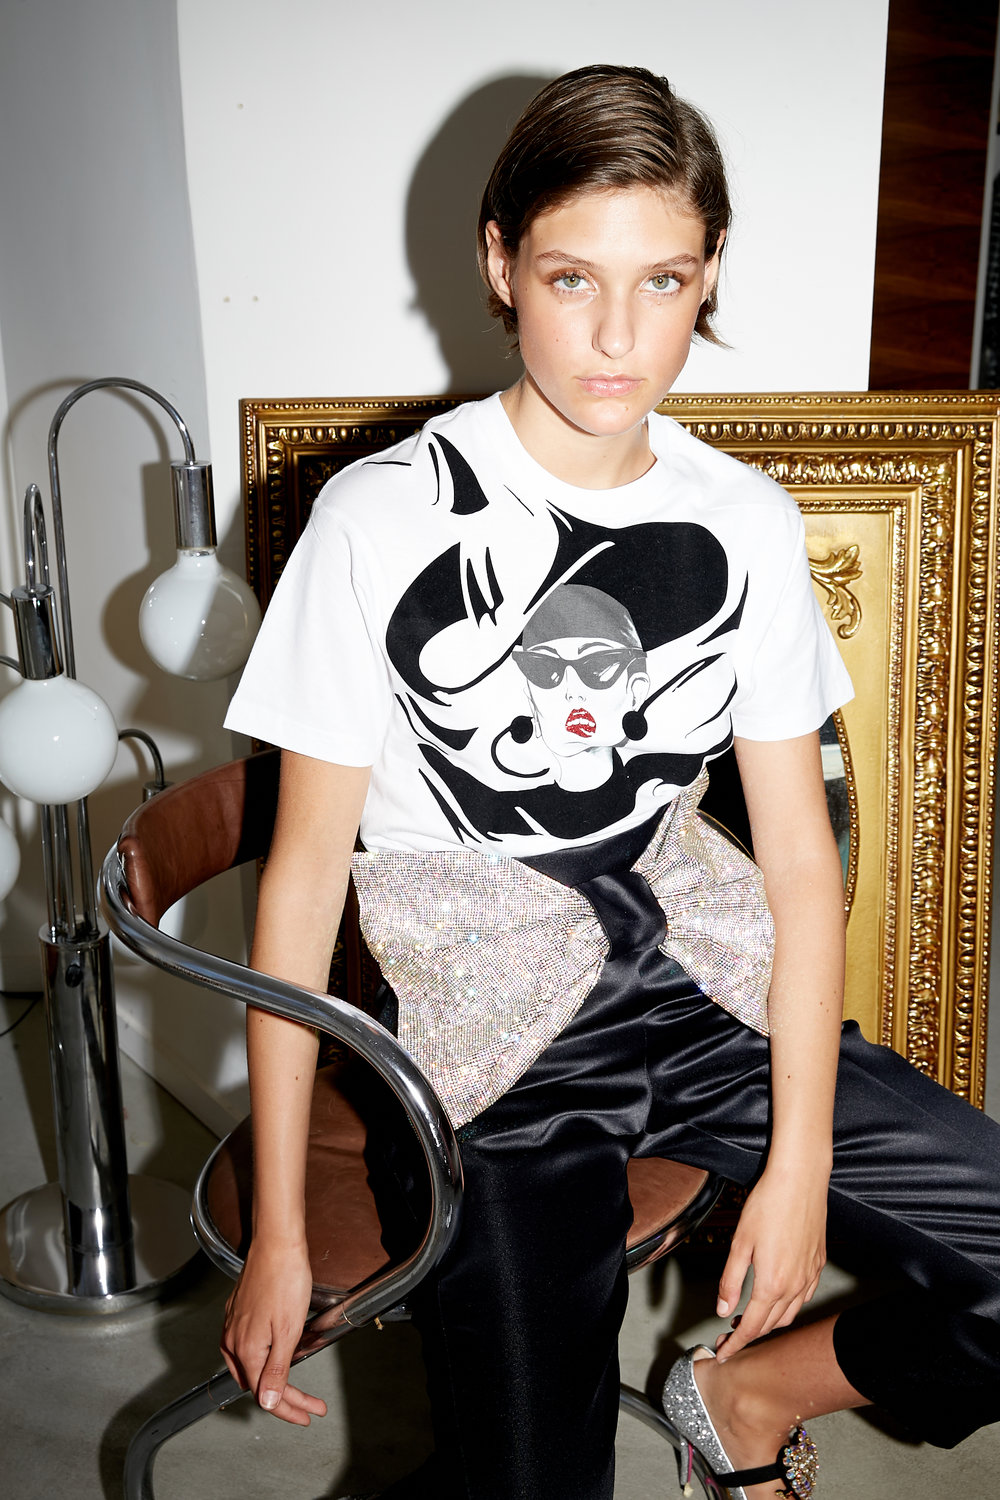 Model sits in whit t-shirt with woman's face graphic and black satin trousers with oversized crystal bow at waist